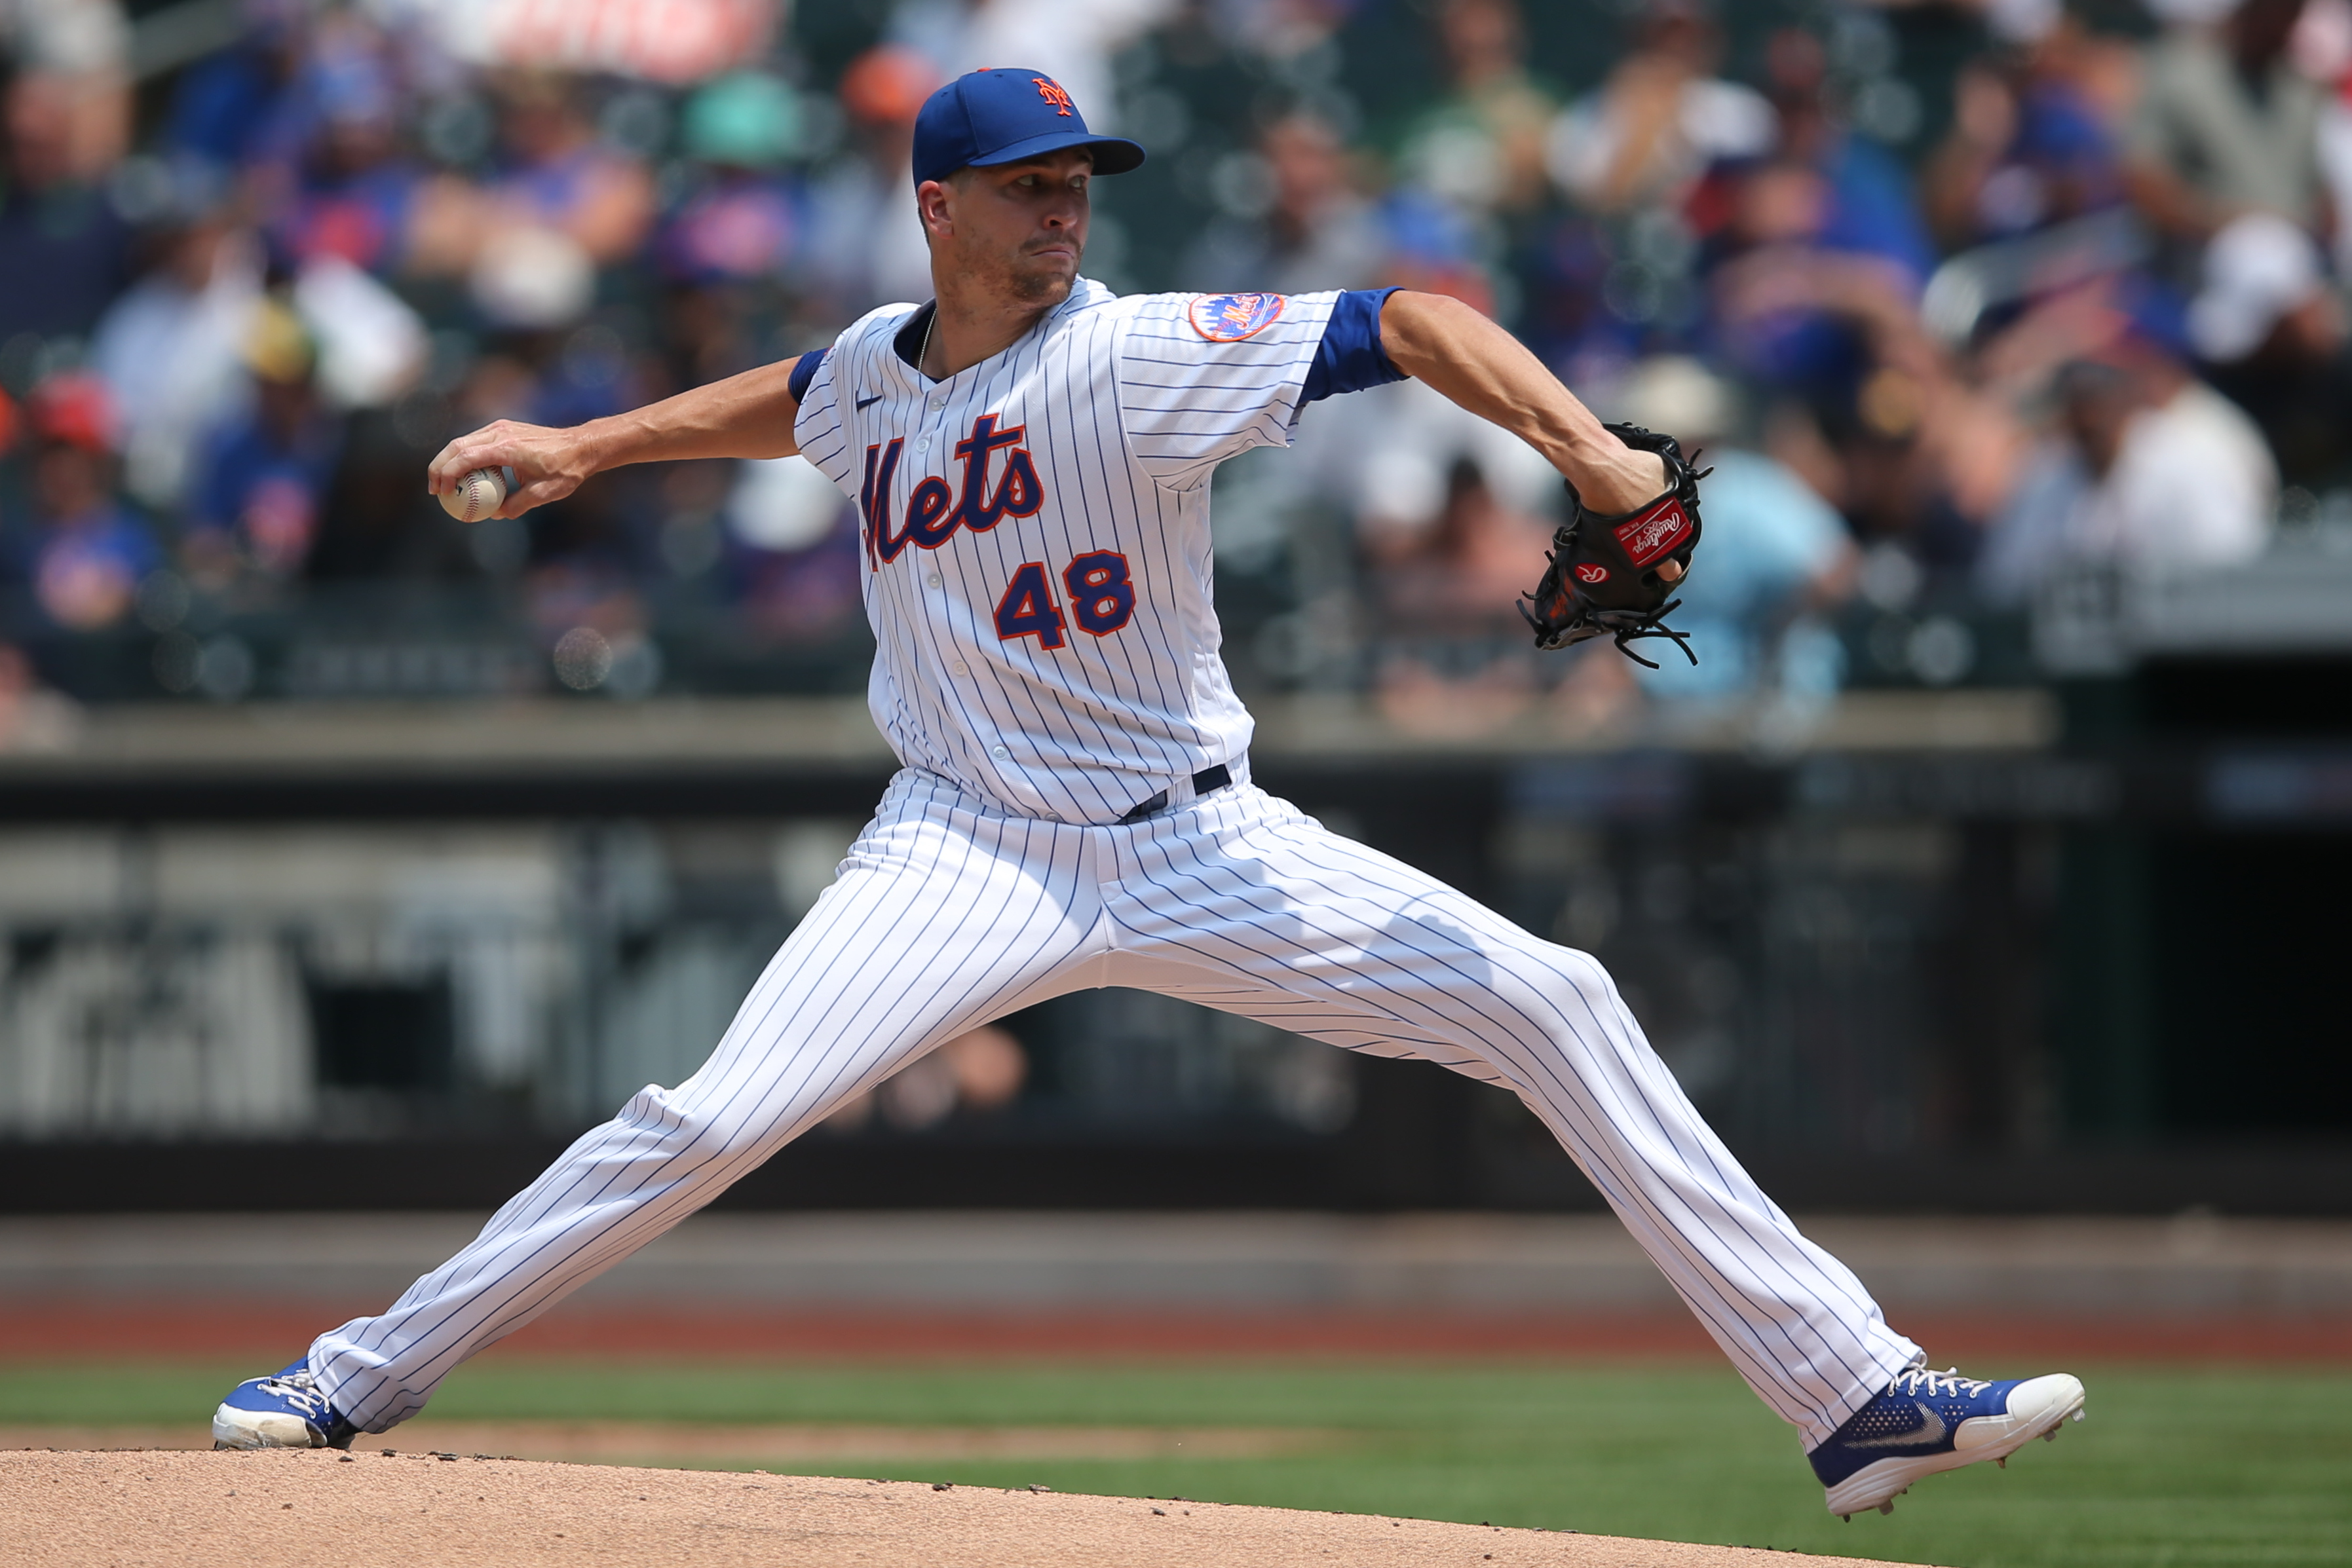 MLB: Milwaukee Brewers at New York Mets-Game 1